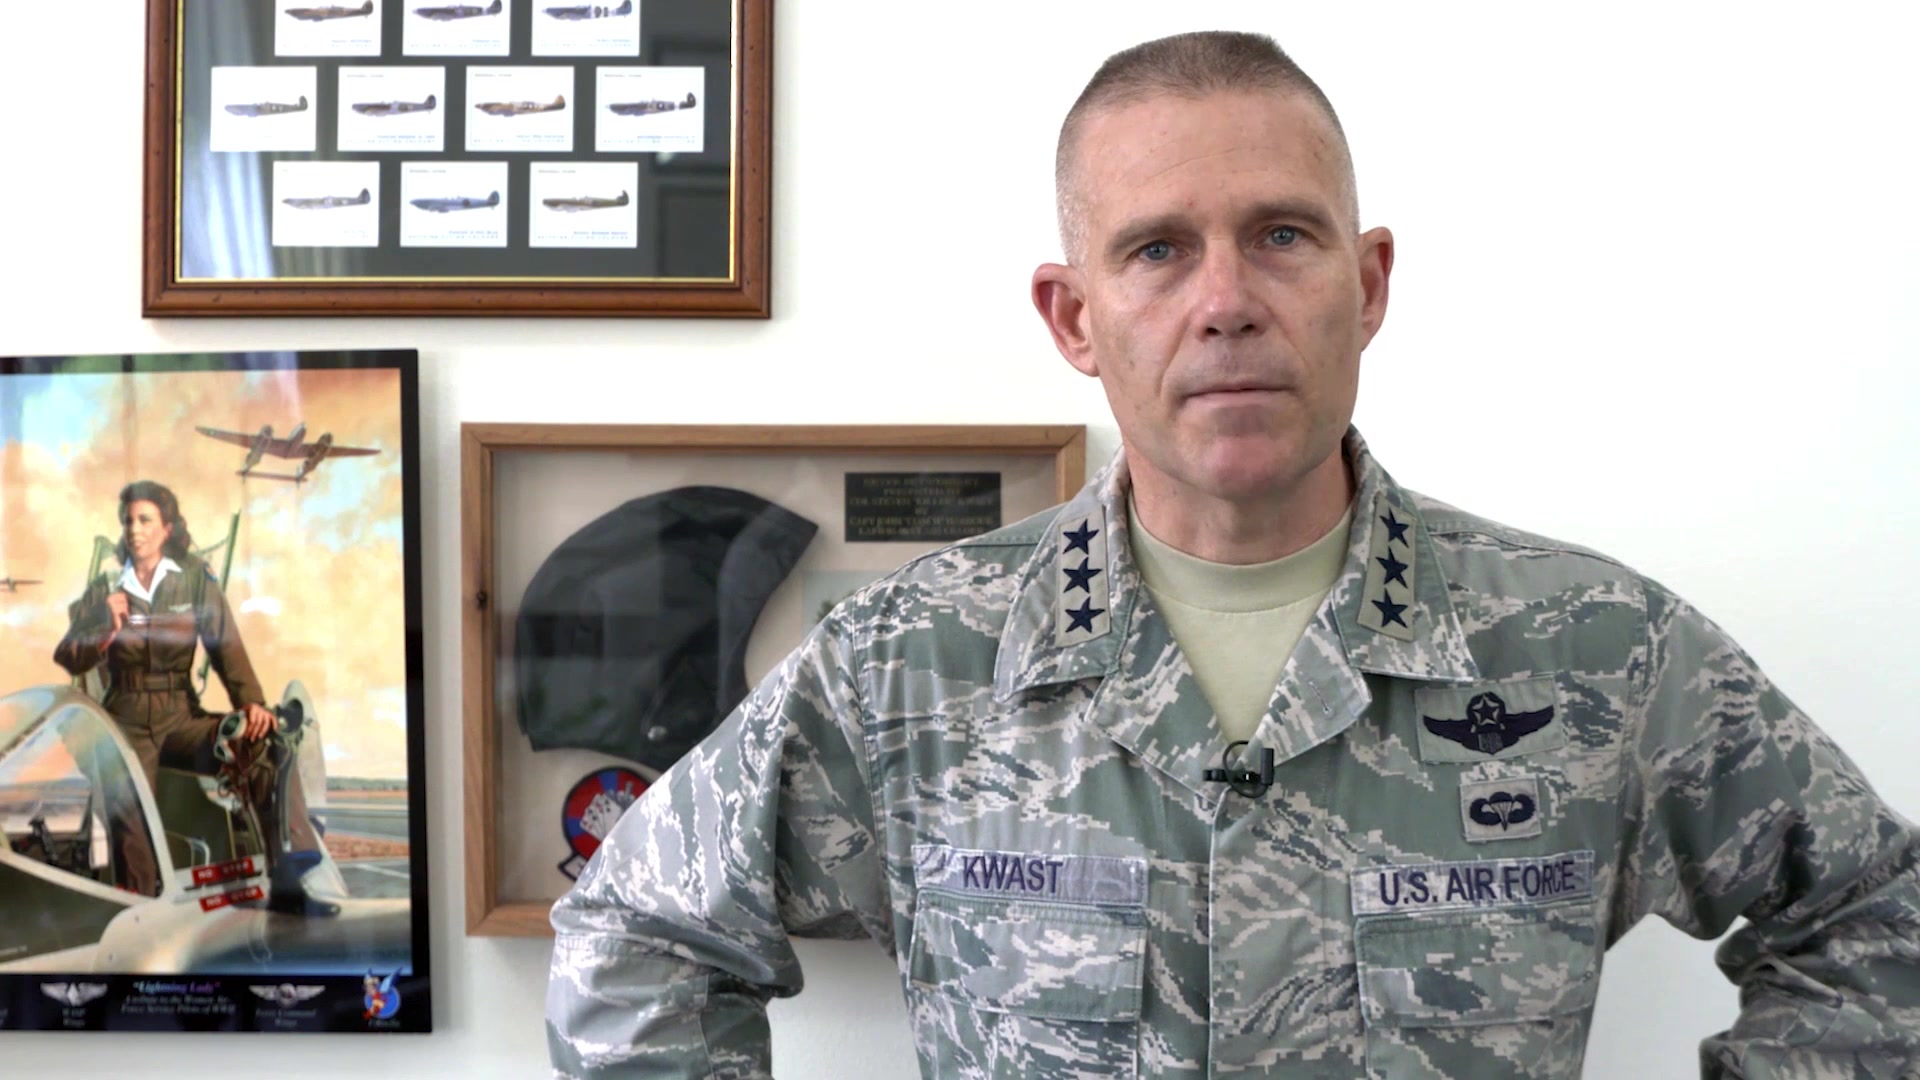 """This deep and abiding part of who we are..this compassion for one another, is the glue that binds us together when times are rough."" 